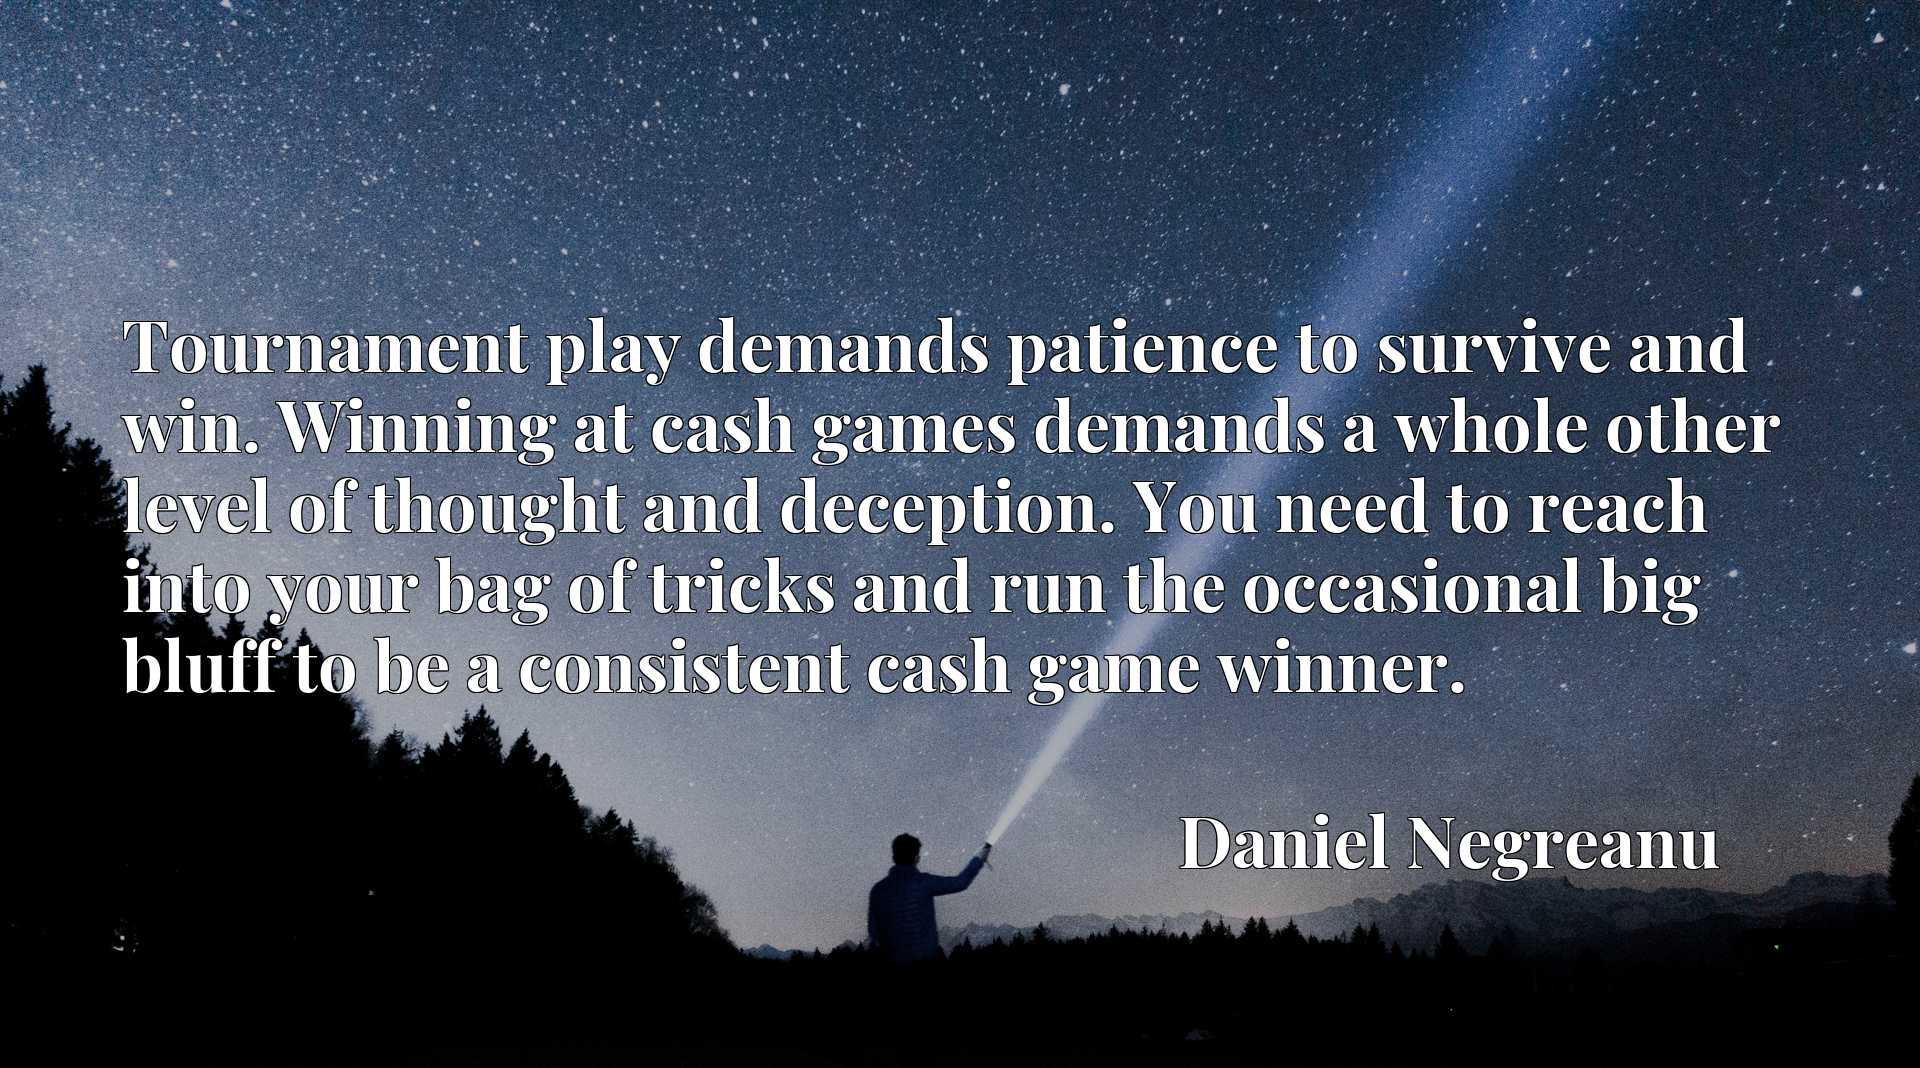 Tournament play demands patience to survive and win. Winning at cash games demands a whole other level of thought and deception. You need to reach into your bag of tricks and run the occasional big bluff to be a consistent cash game winner.